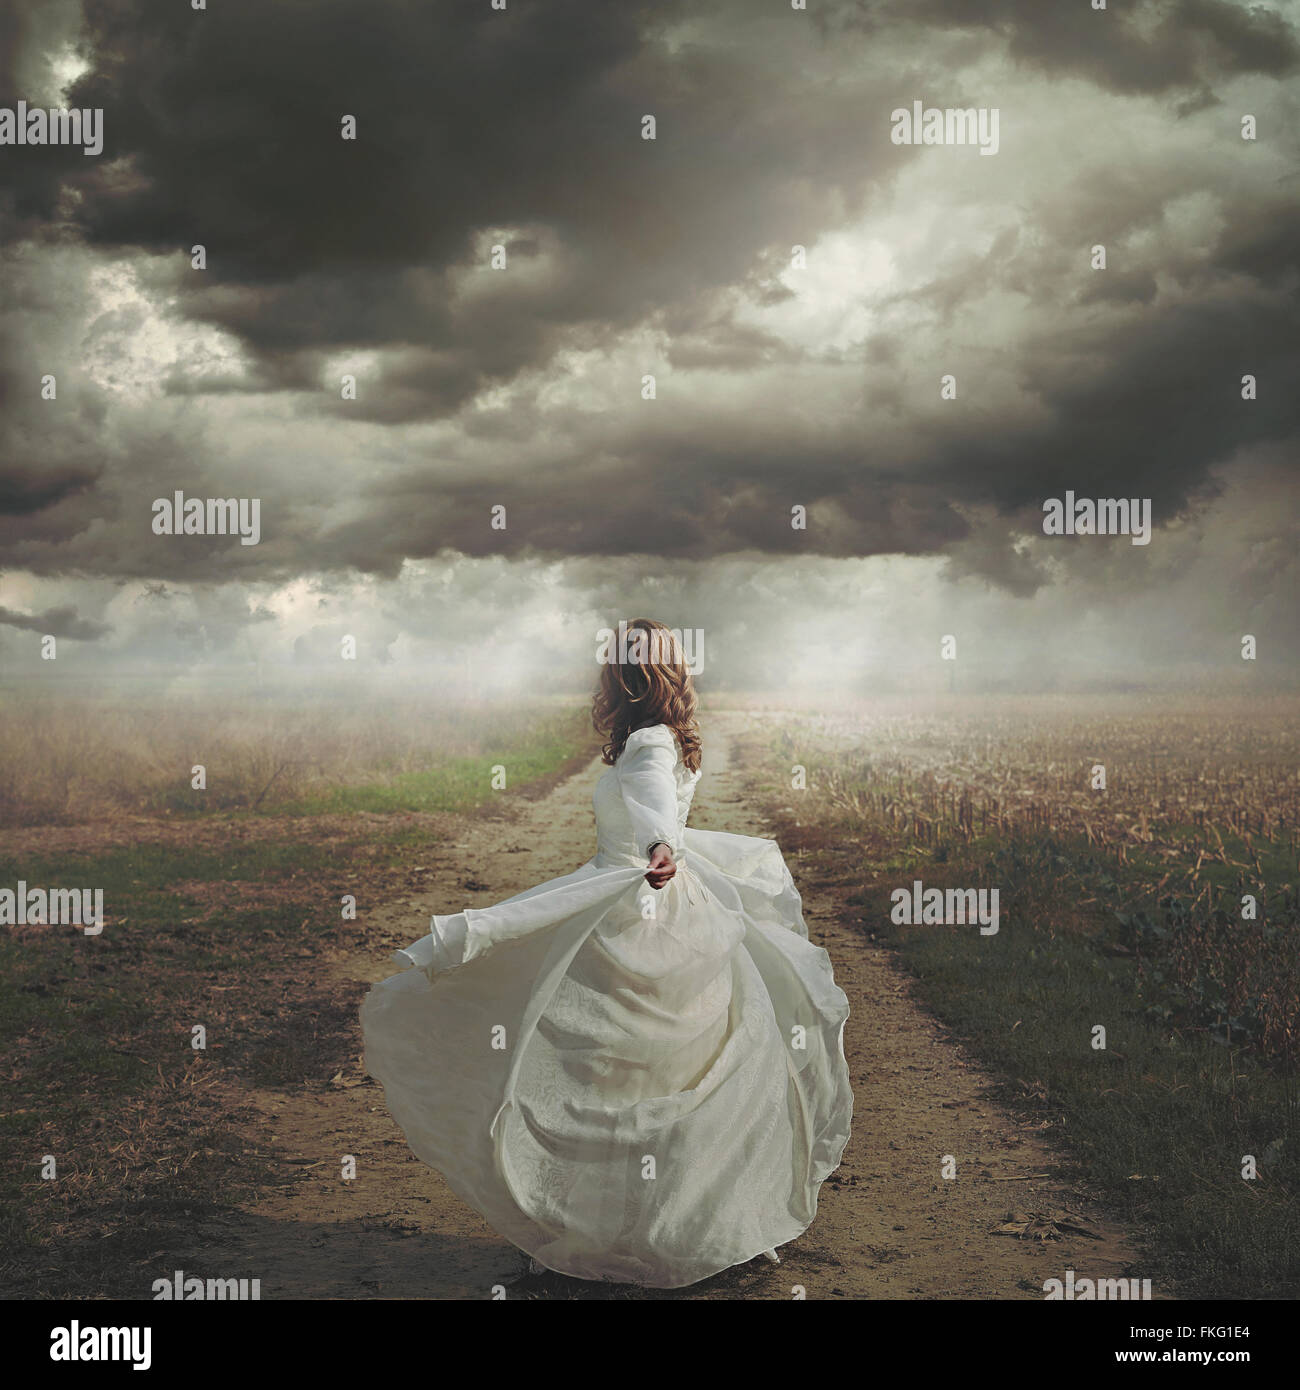 Woman dancing in desolate road. Dramatic and surreal cloudscape - Stock Image